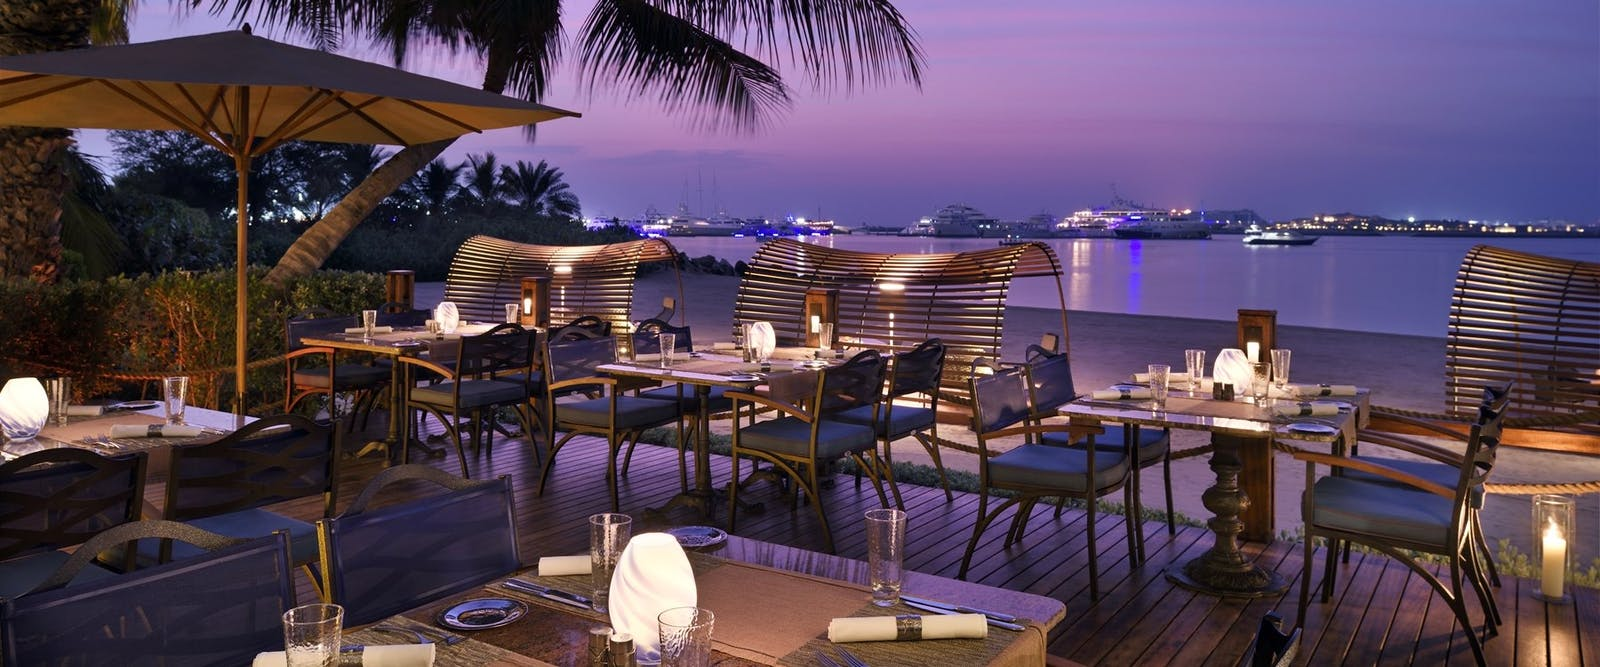 Beach Bar and Grill at One&Only Royal Mirage - The Palace, Dubai